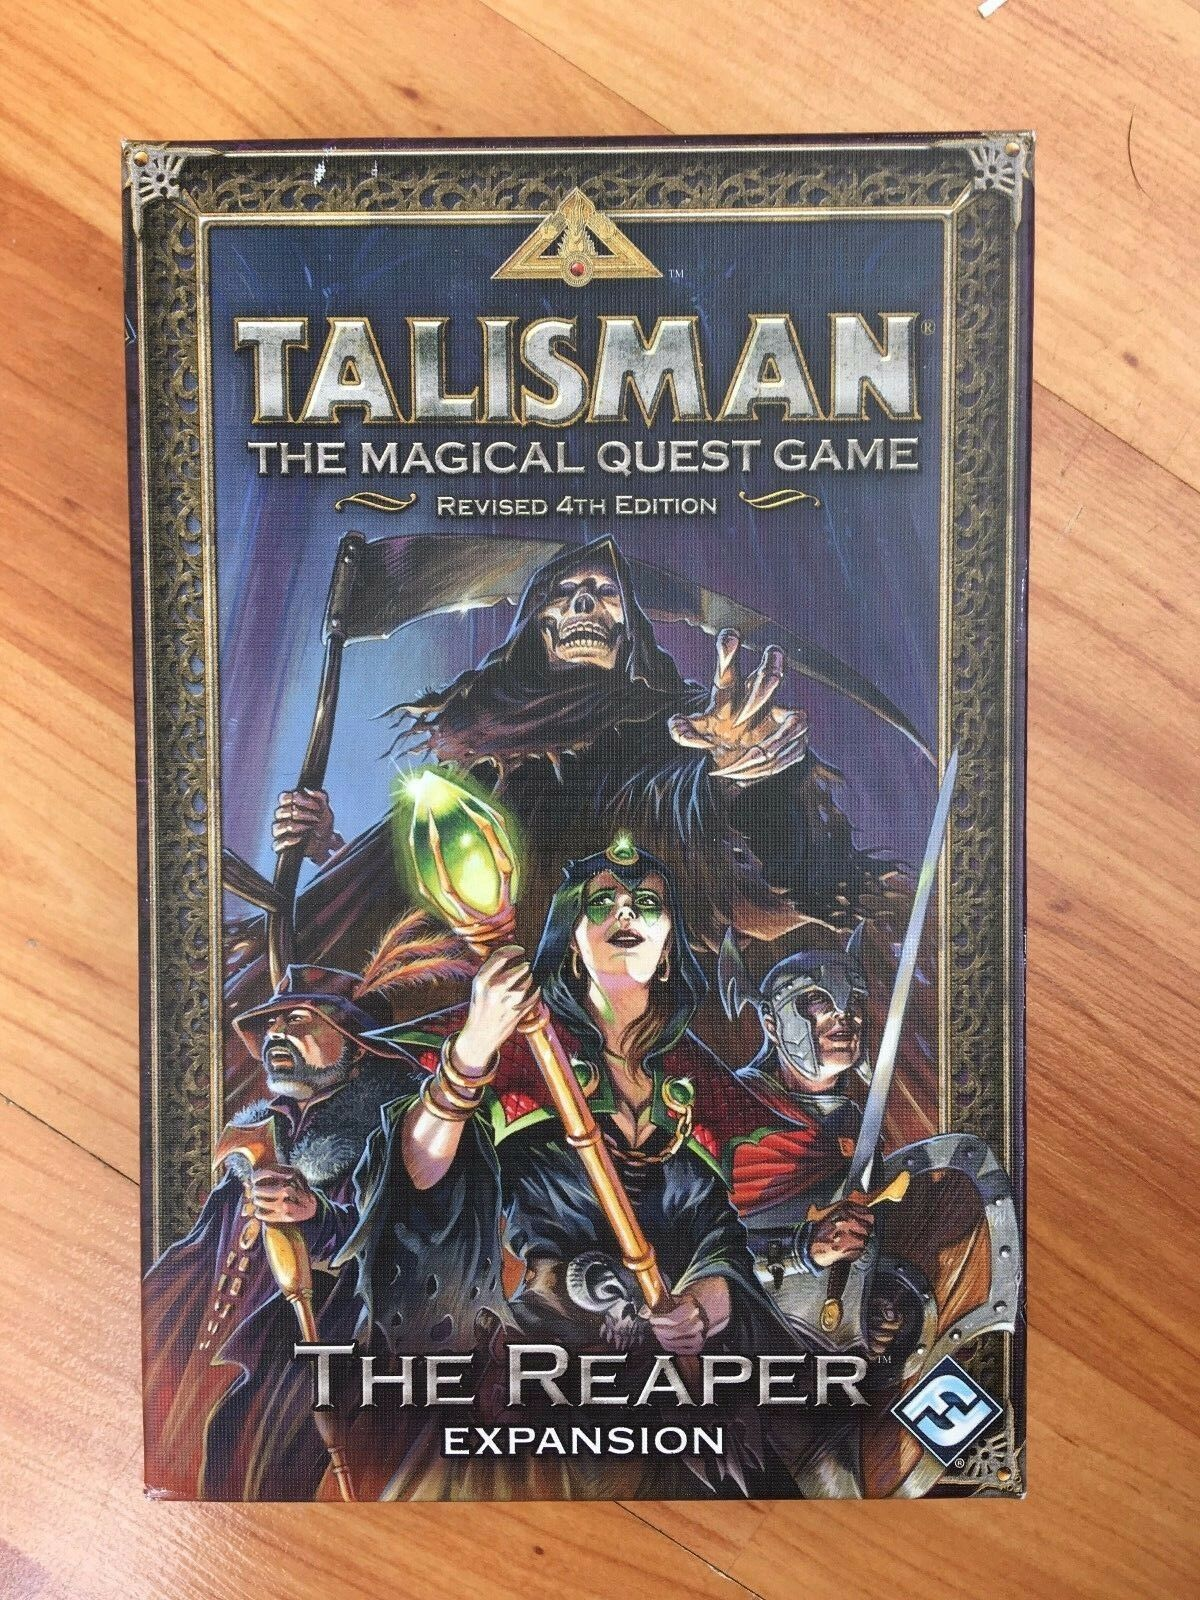 TALISMAN THE MAGICAL QUEST BOARD GAME THE REAPER EXPANSION REVISED 4TH EDITION